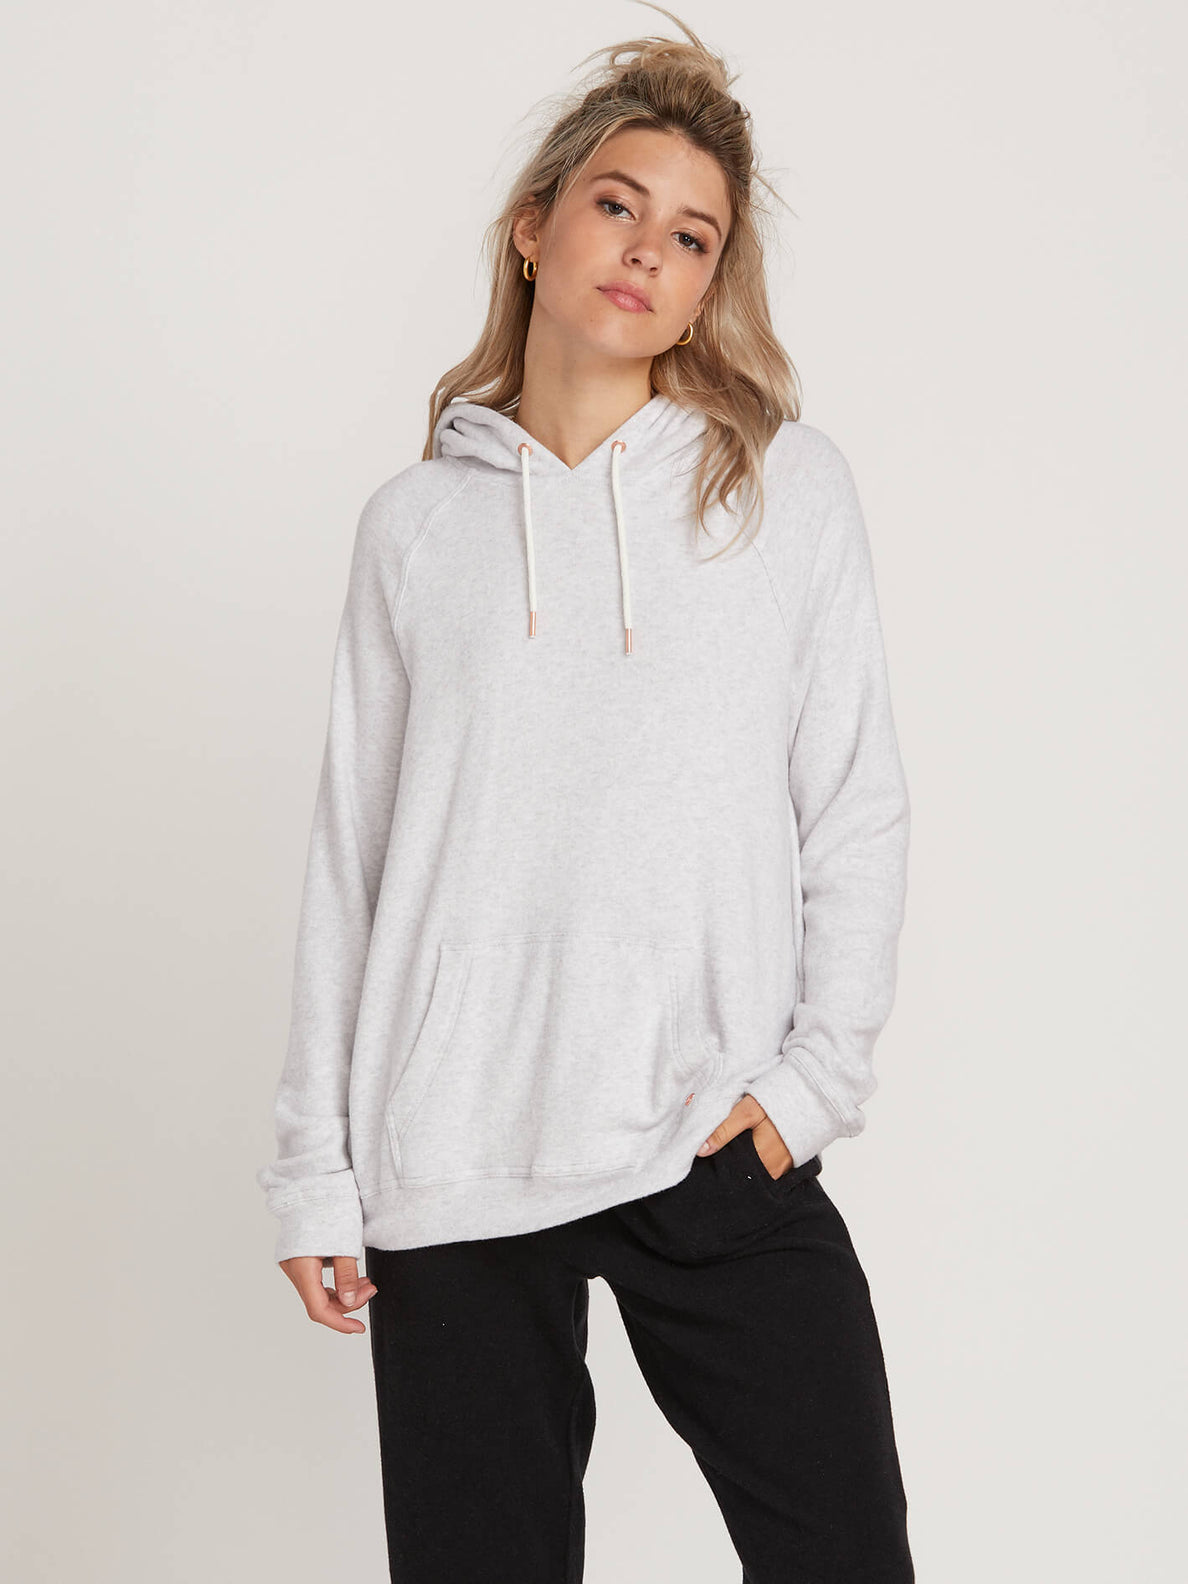 Lived In Lounge Pullover Hoodie In Light Grey, Front View